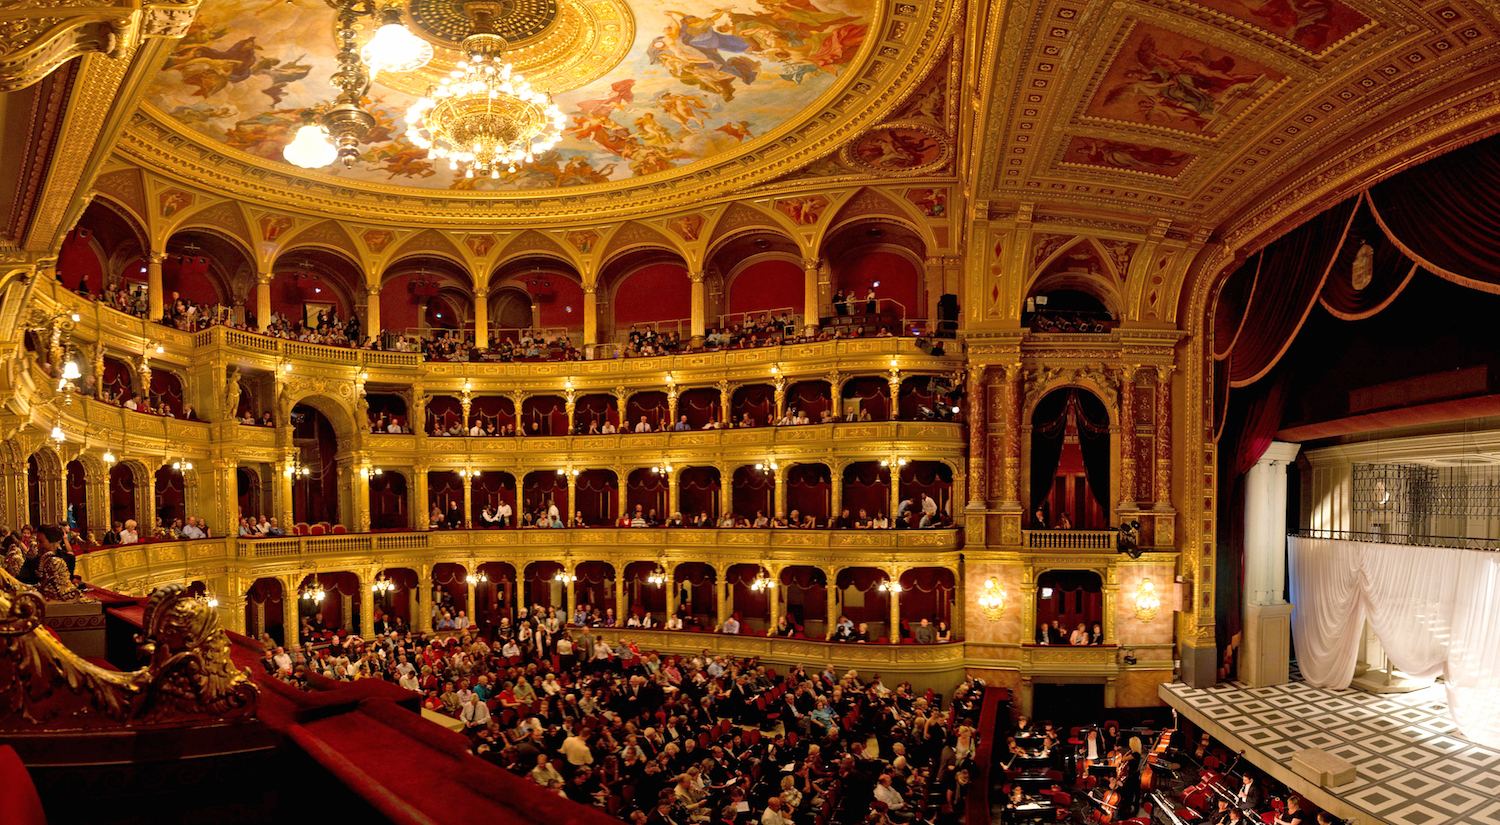 At the Hungarian State Opera House in Budapest, Clements noted that luxury doesn't have to come with a hefty price tag. A ticket for a box seat to The Nutcracker cost her only $30.